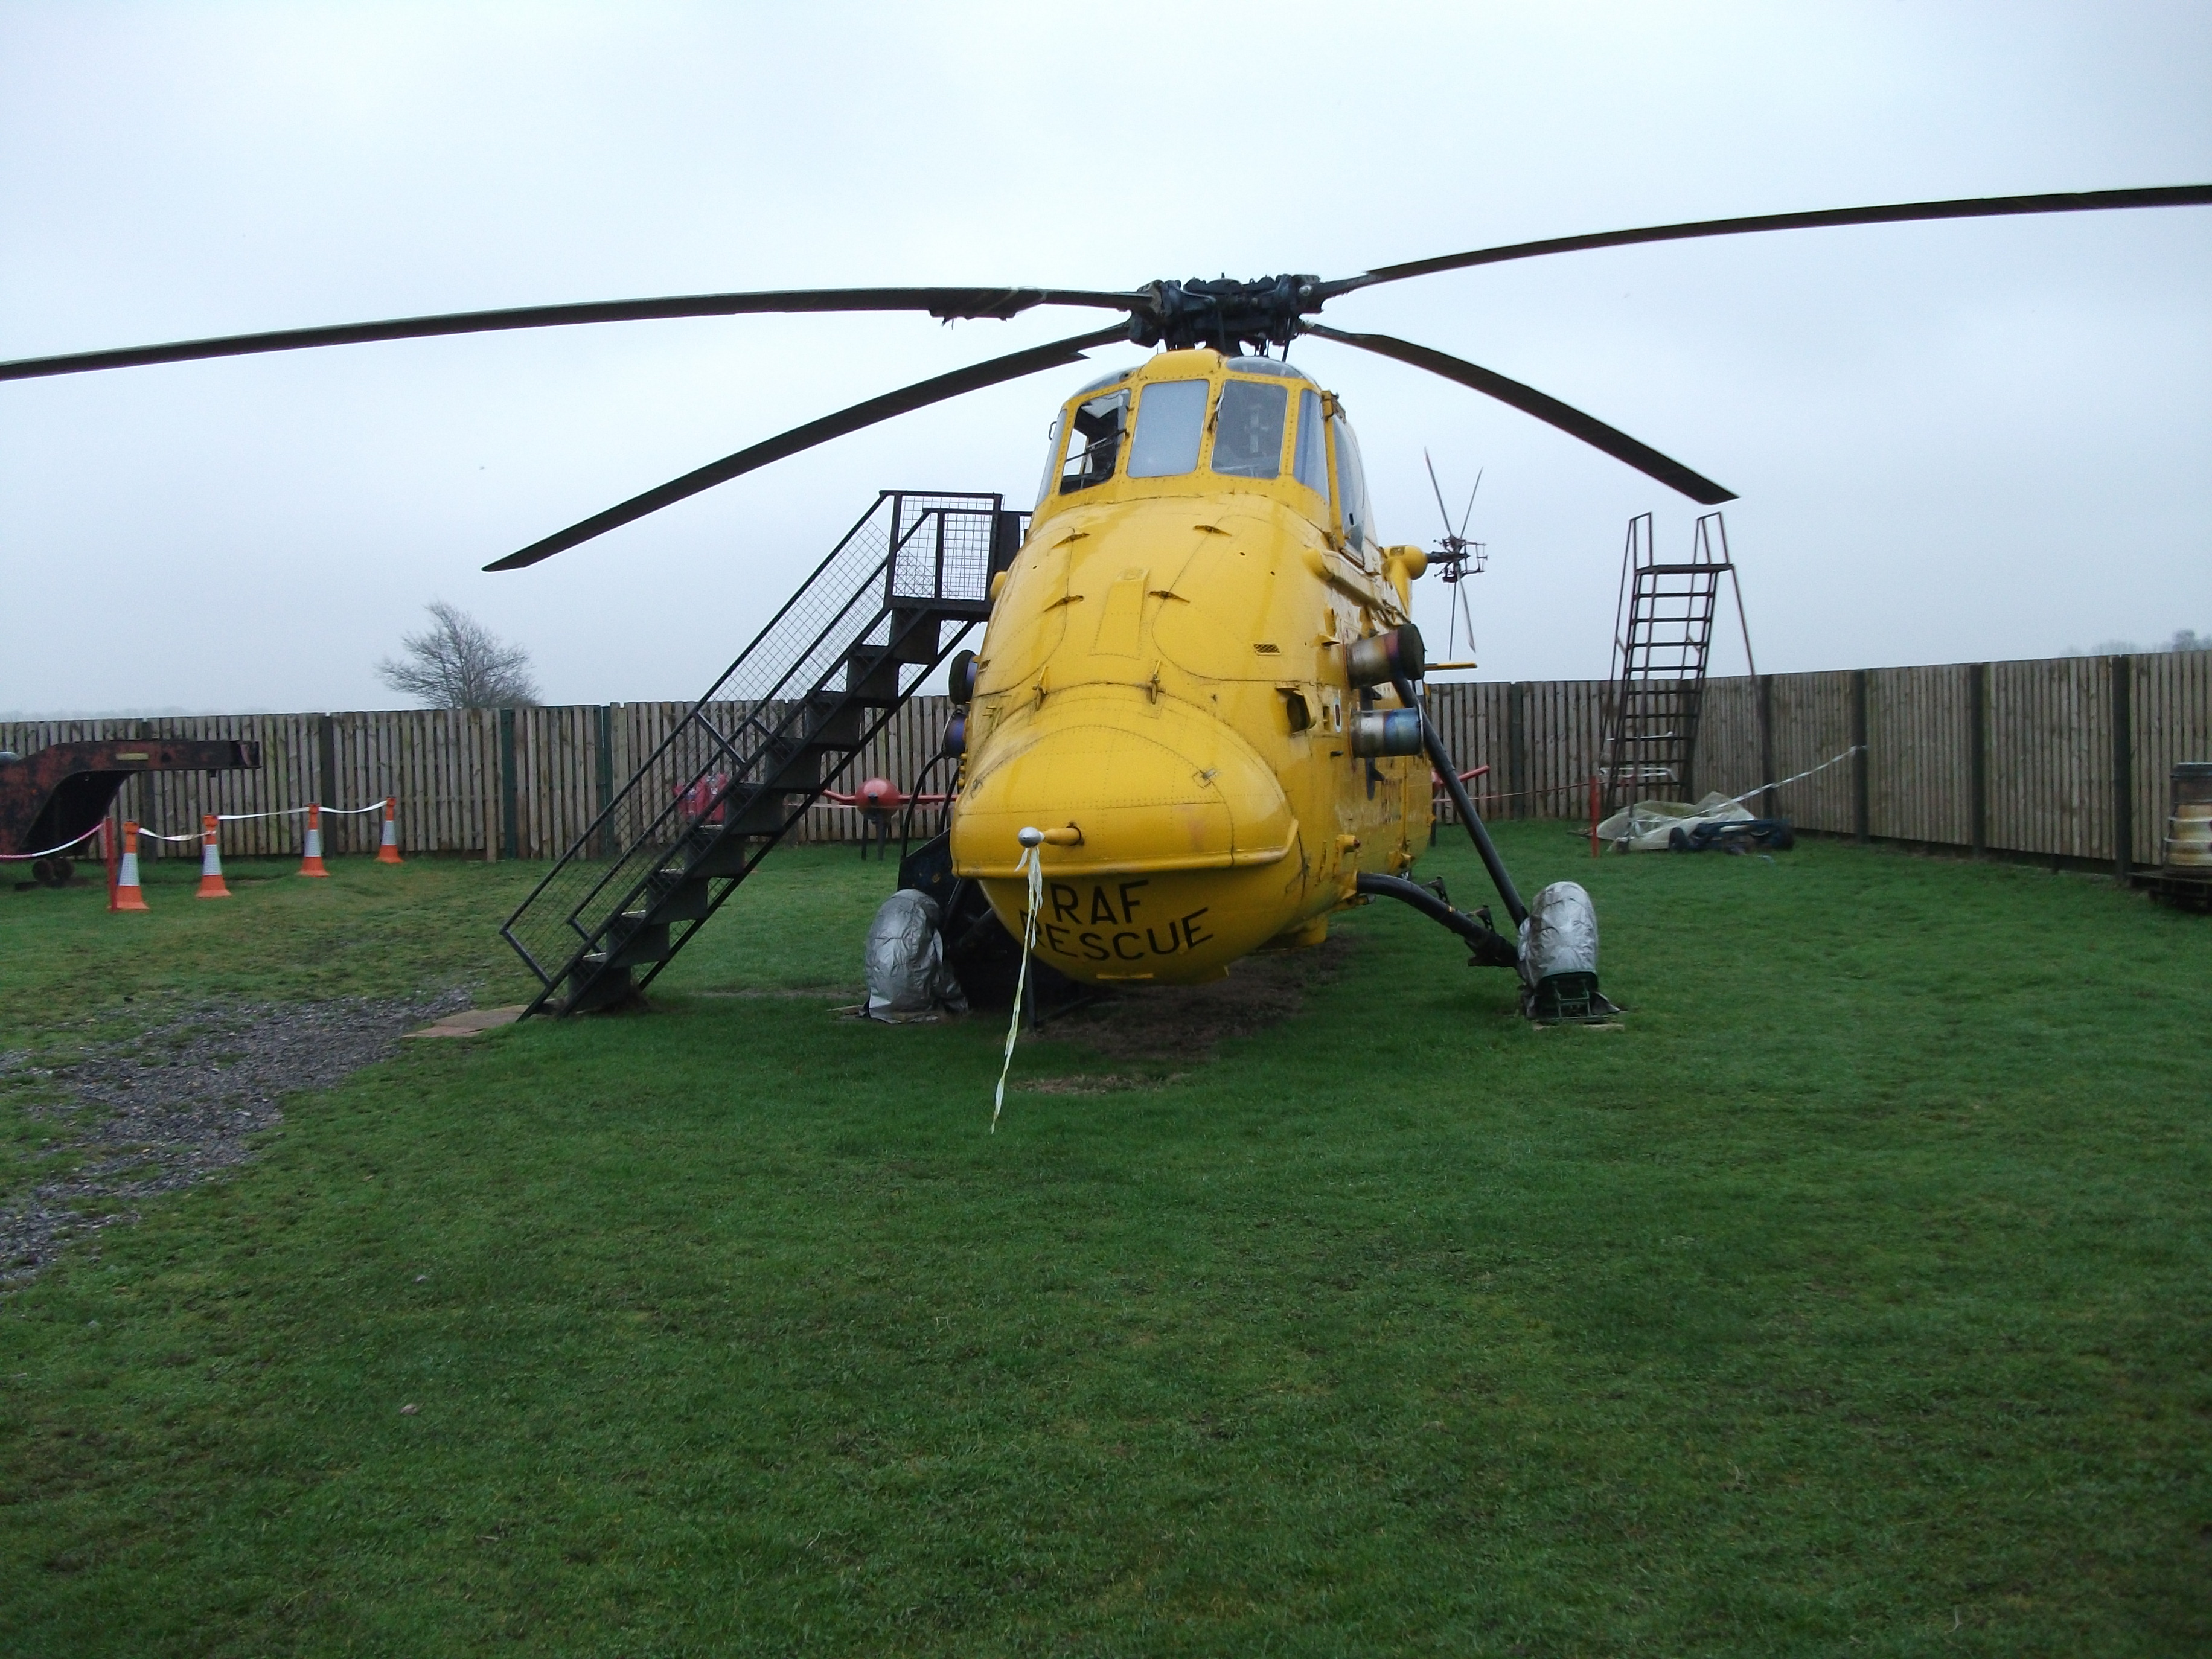 Bournemouth aviation museum, vehicle, rotor blade, outdoor, old, HQ Photo